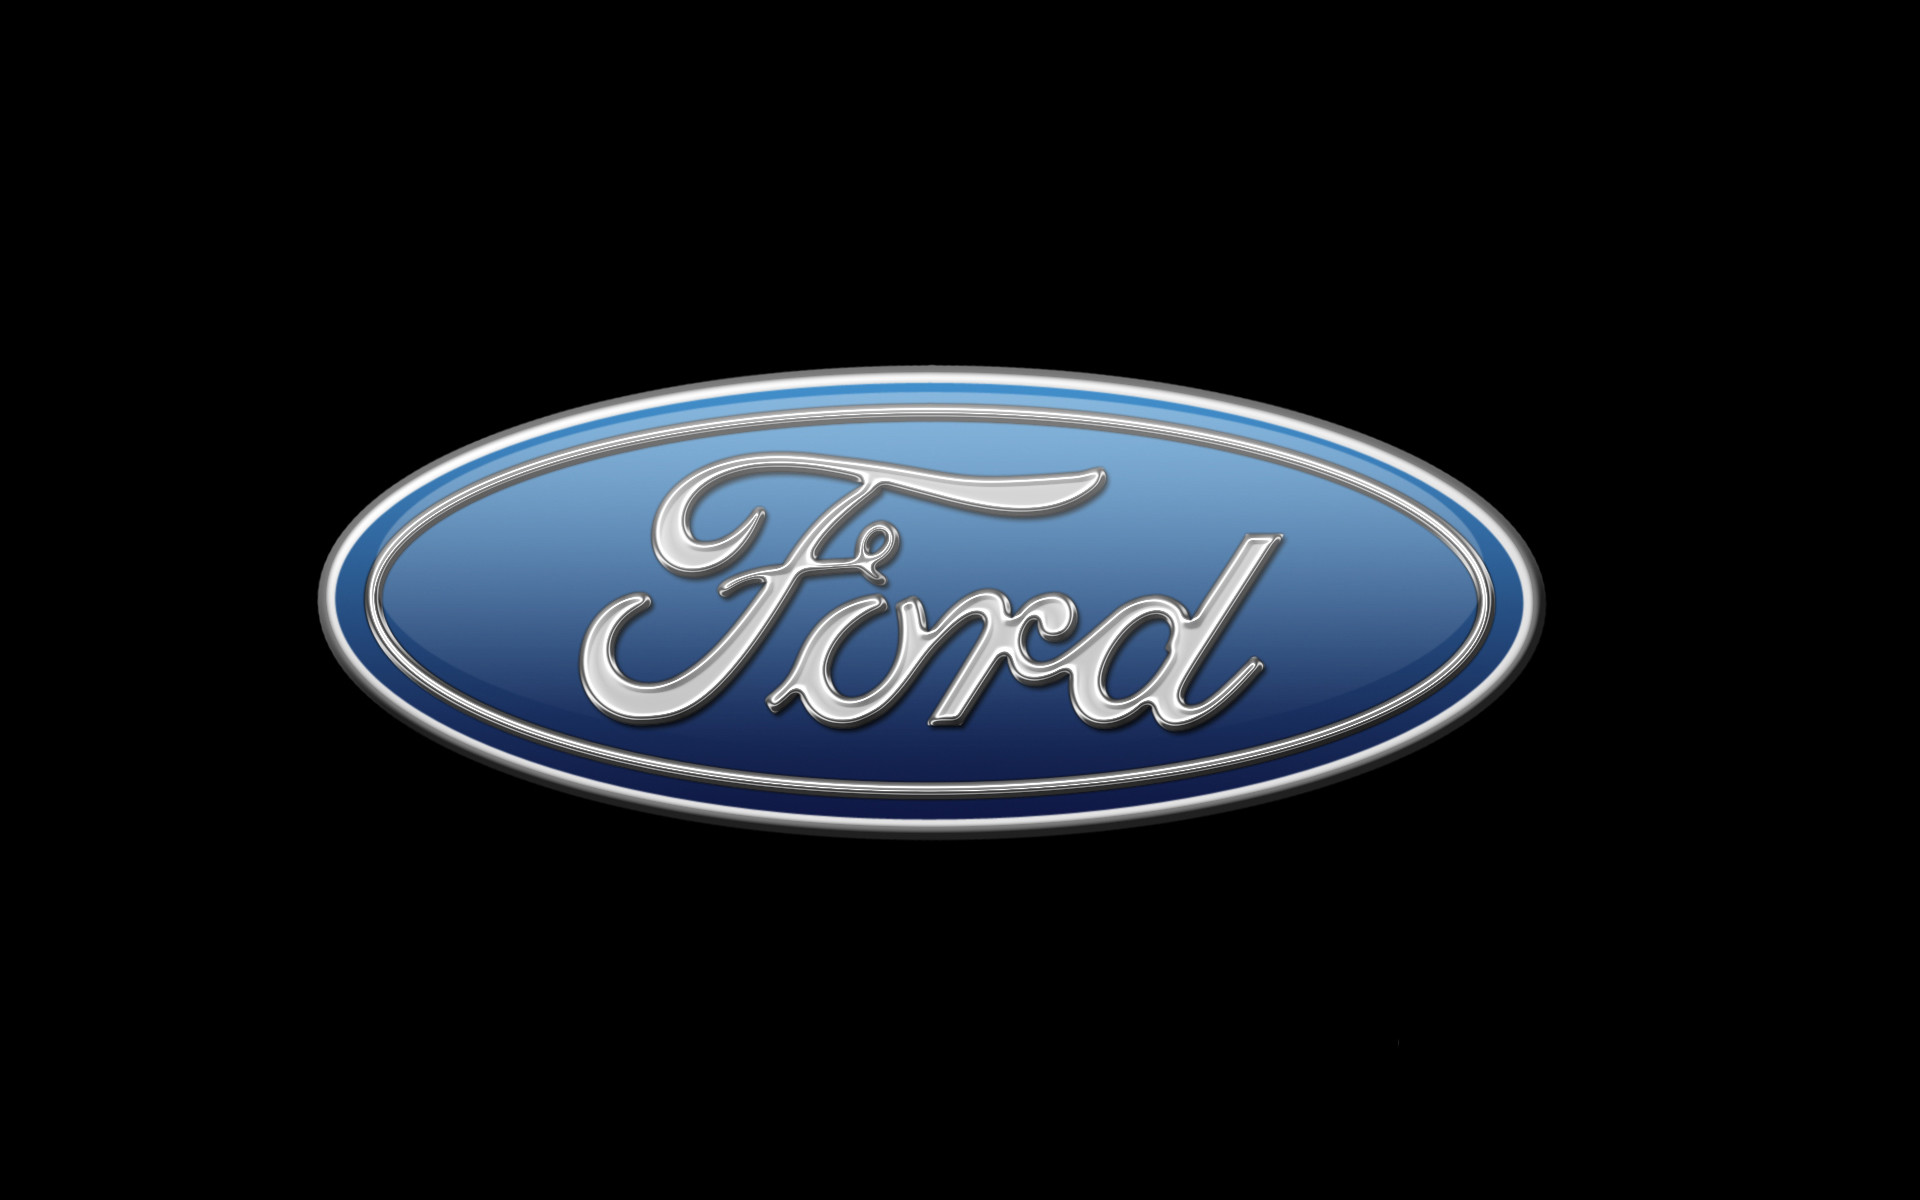 1920x1200 0 Collection of Ford Emblem Wallpaper on HDWallpapers Collection of Ford  Wallpaper on HDWallpapers